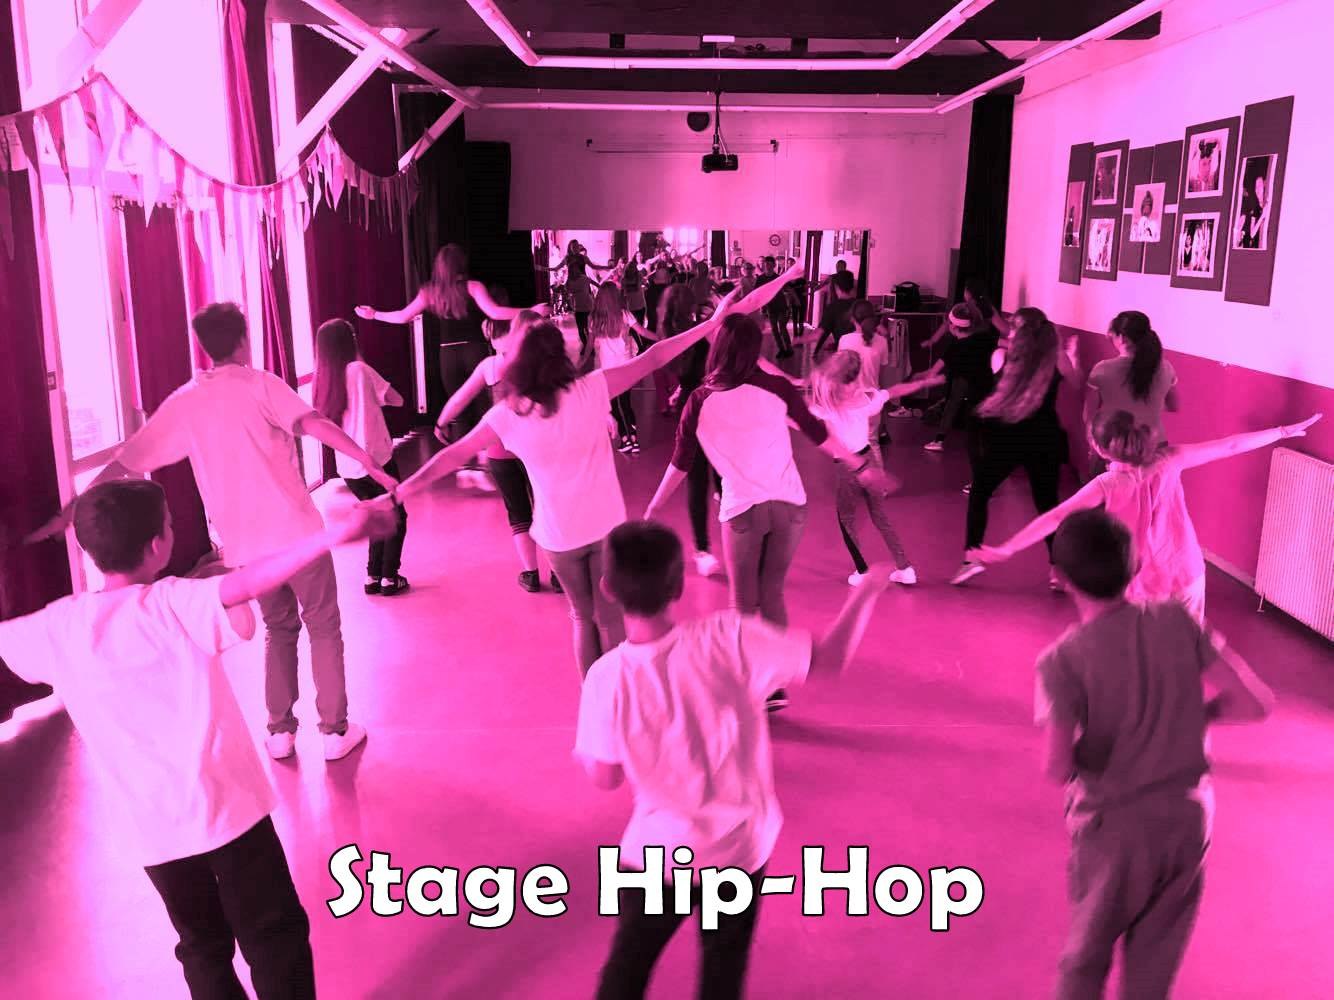 38stage hiphop